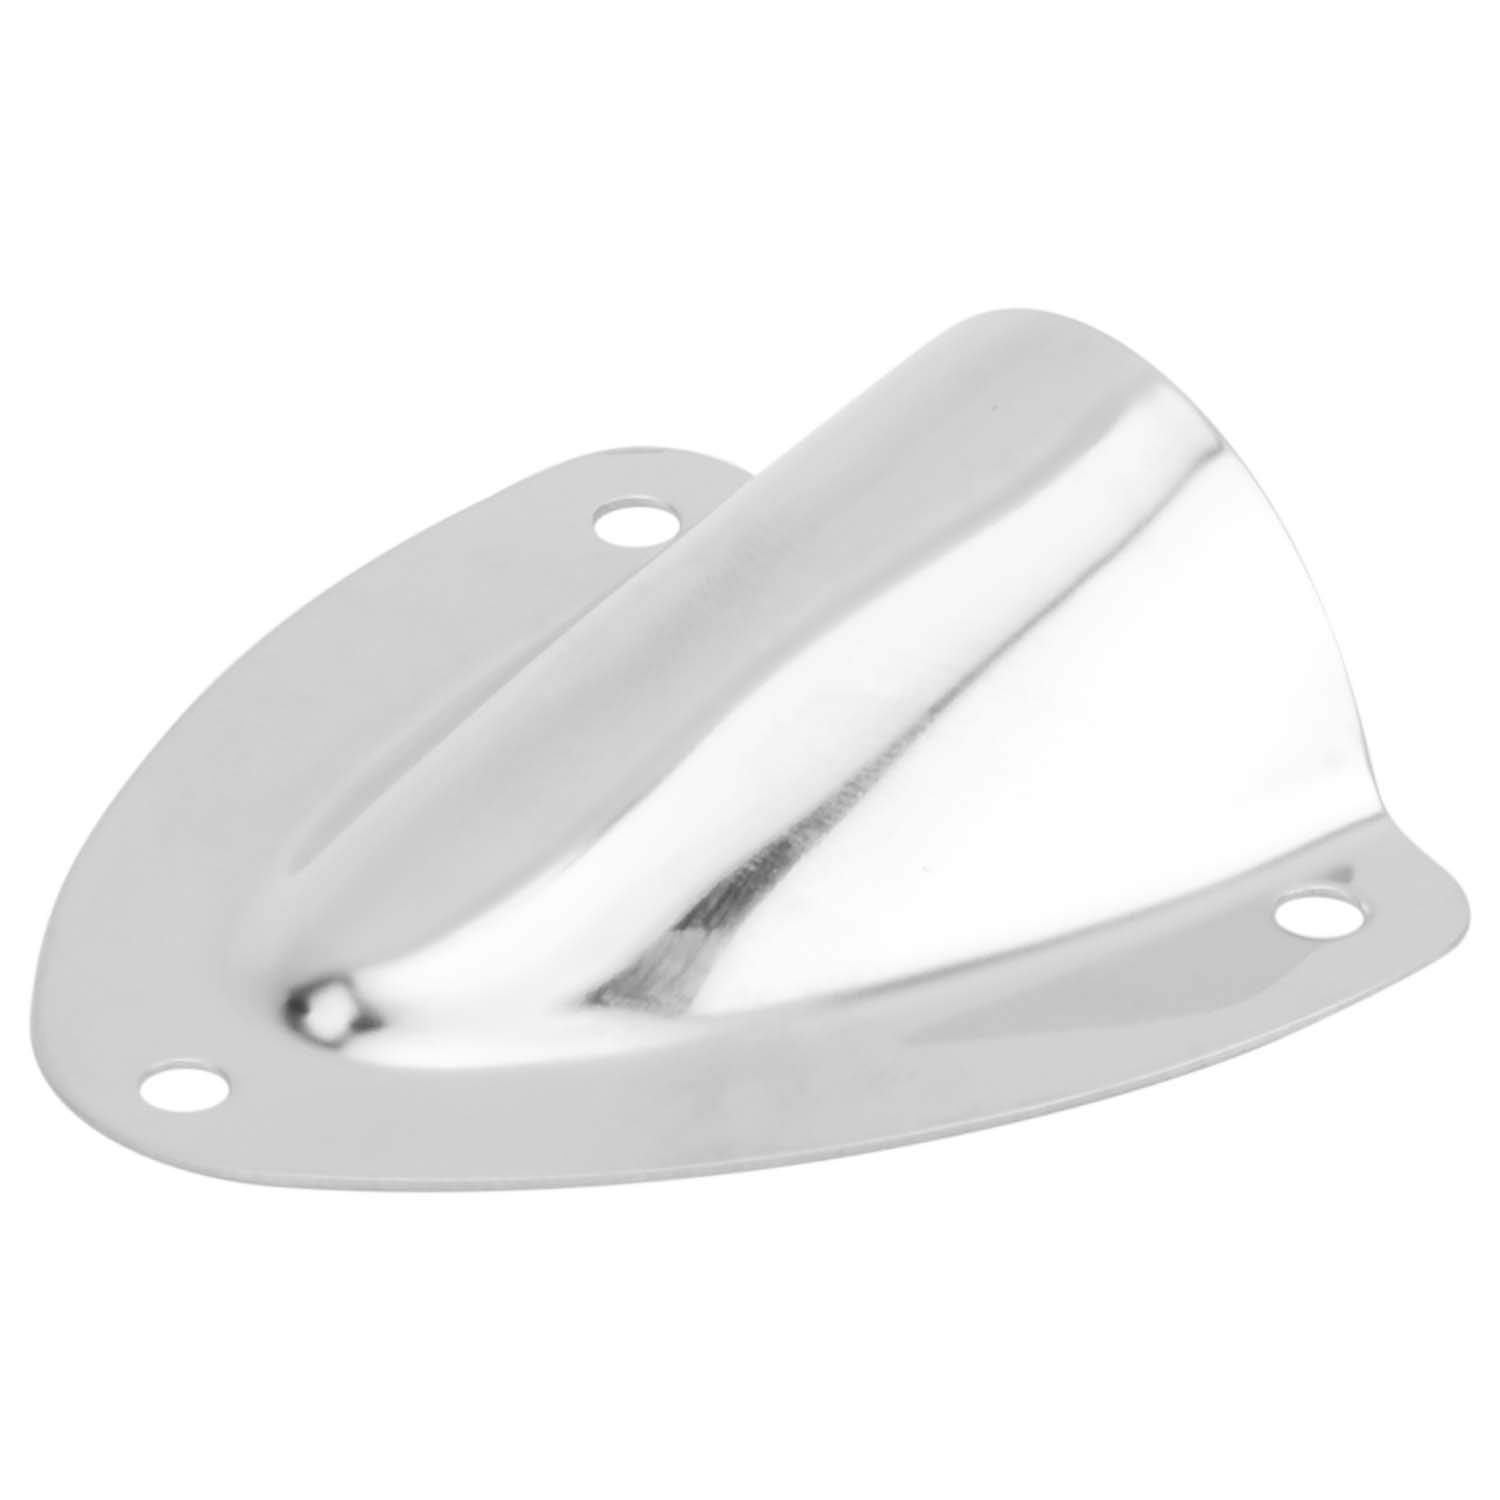 DasMarine 10 PCS Stainless Steel Cable Cover,Boat Transducer Wiring Cover,Clamshell Vent Wire Cover Clam Shell Vent